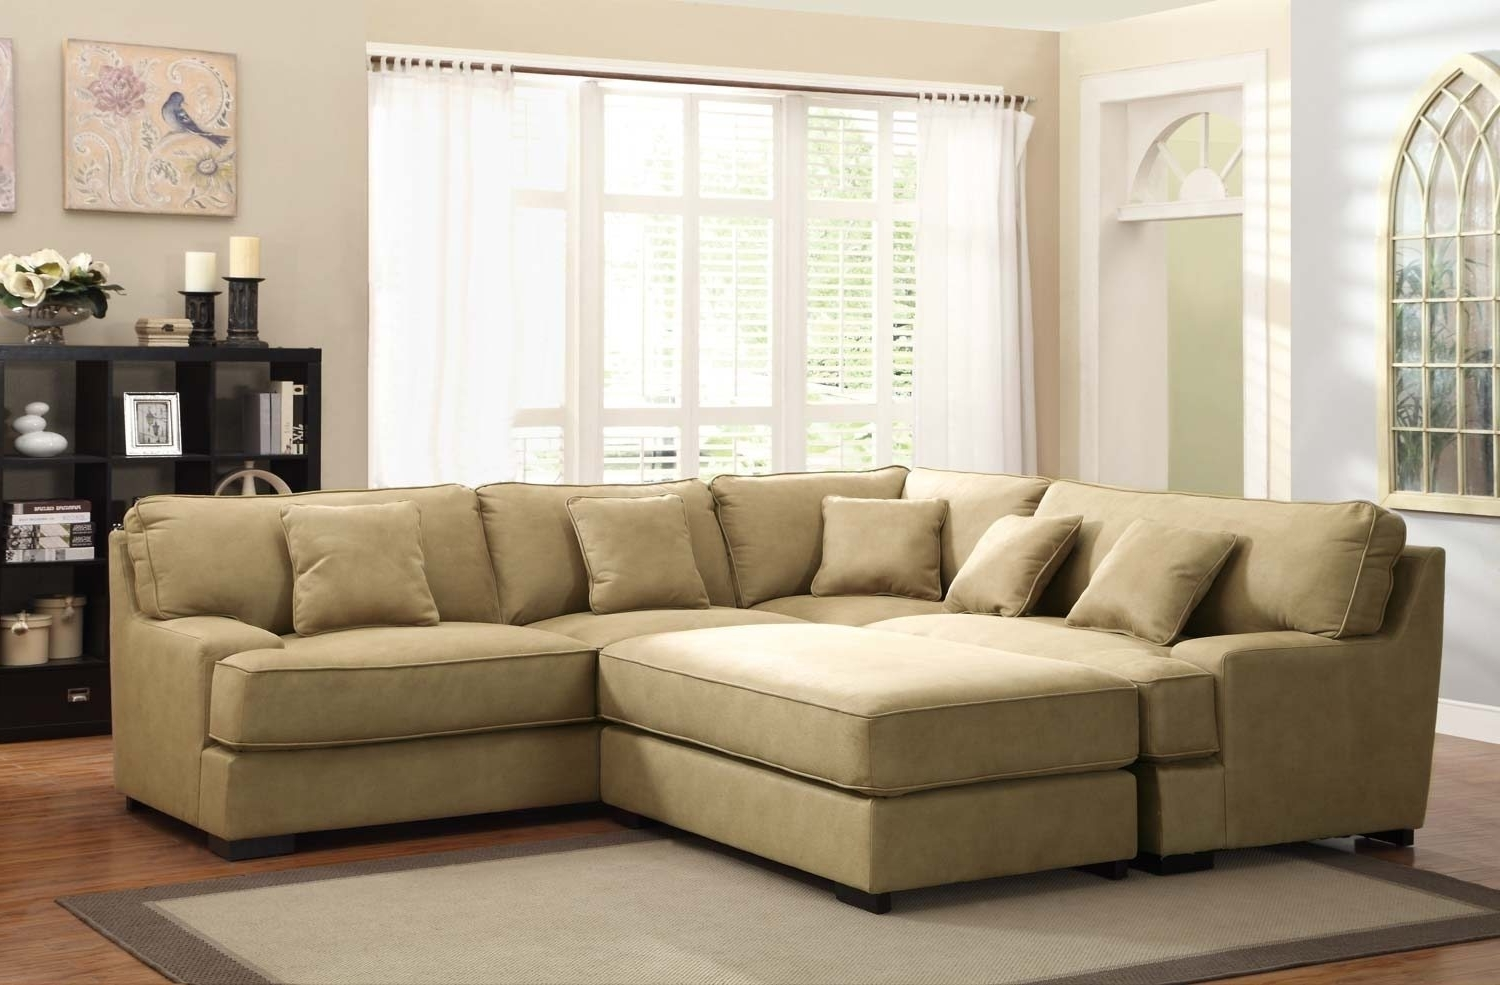 Most Popular Sofa : Elegant Oversized Sectional Sofa Picture Oversized For Couches With Large Ottoman (View 20 of 20)